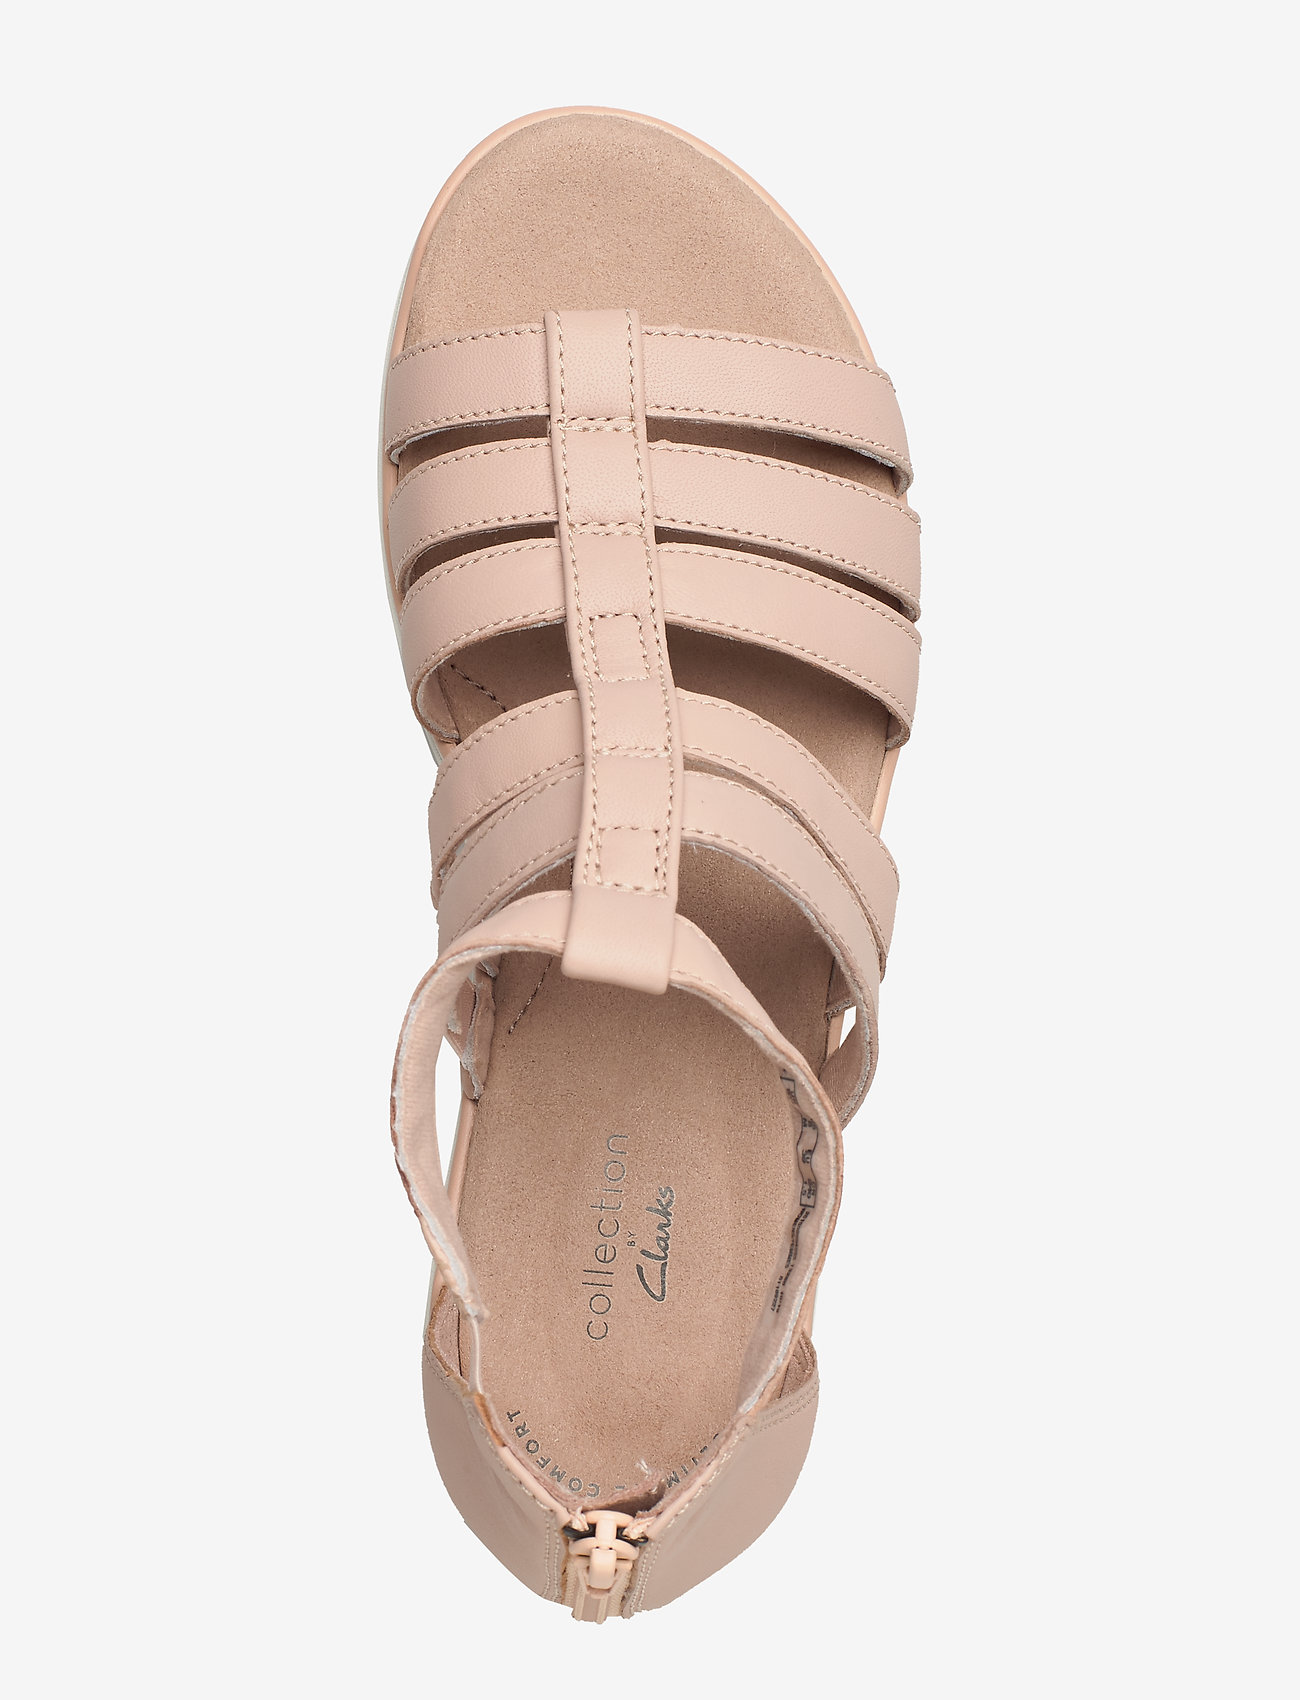 Jillian Nina (Blush Leather) - Clarks